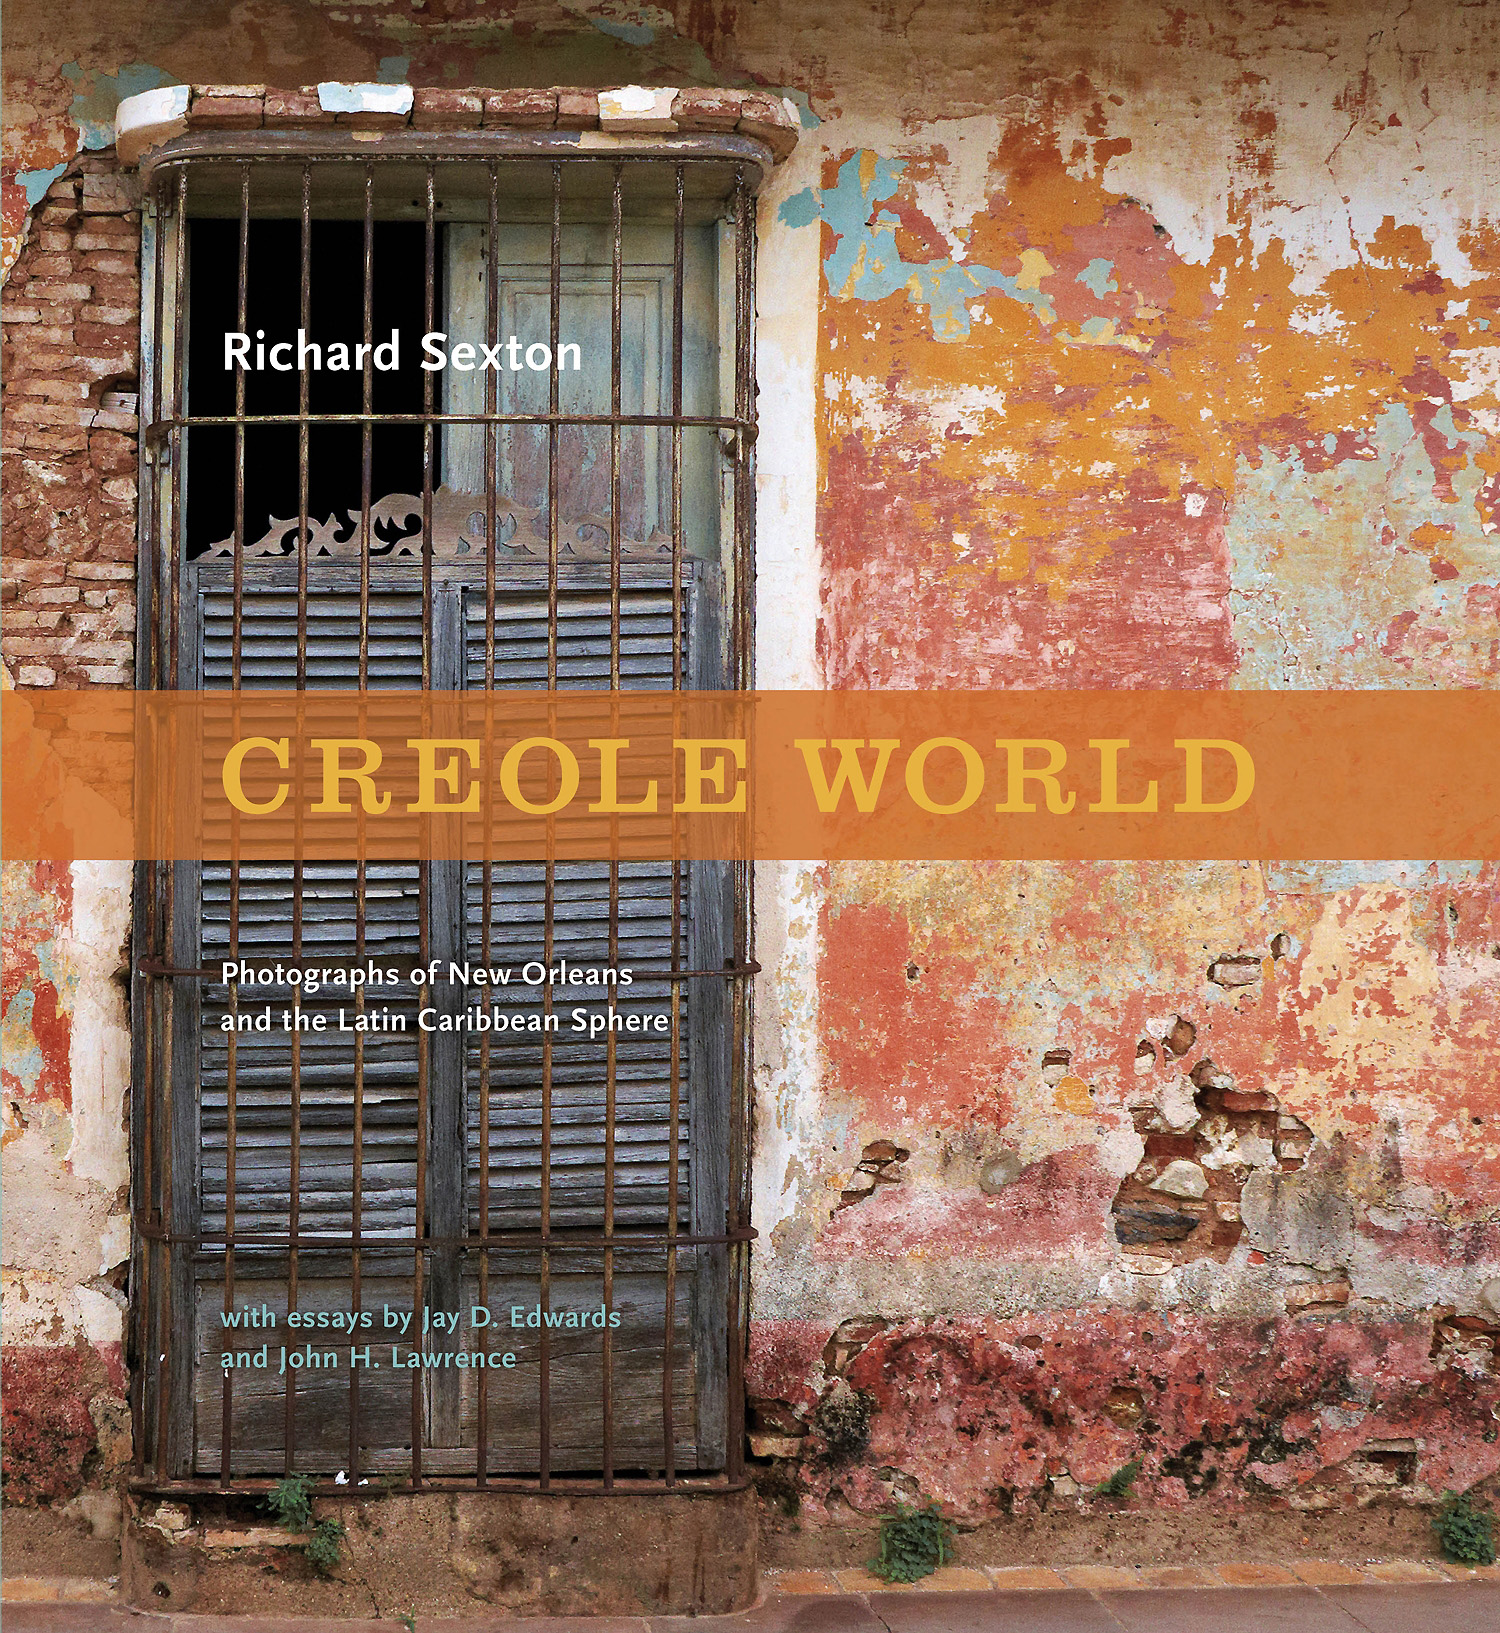 Creole World Wins 2016 Award for Overall Excellence from Southeast Library Association